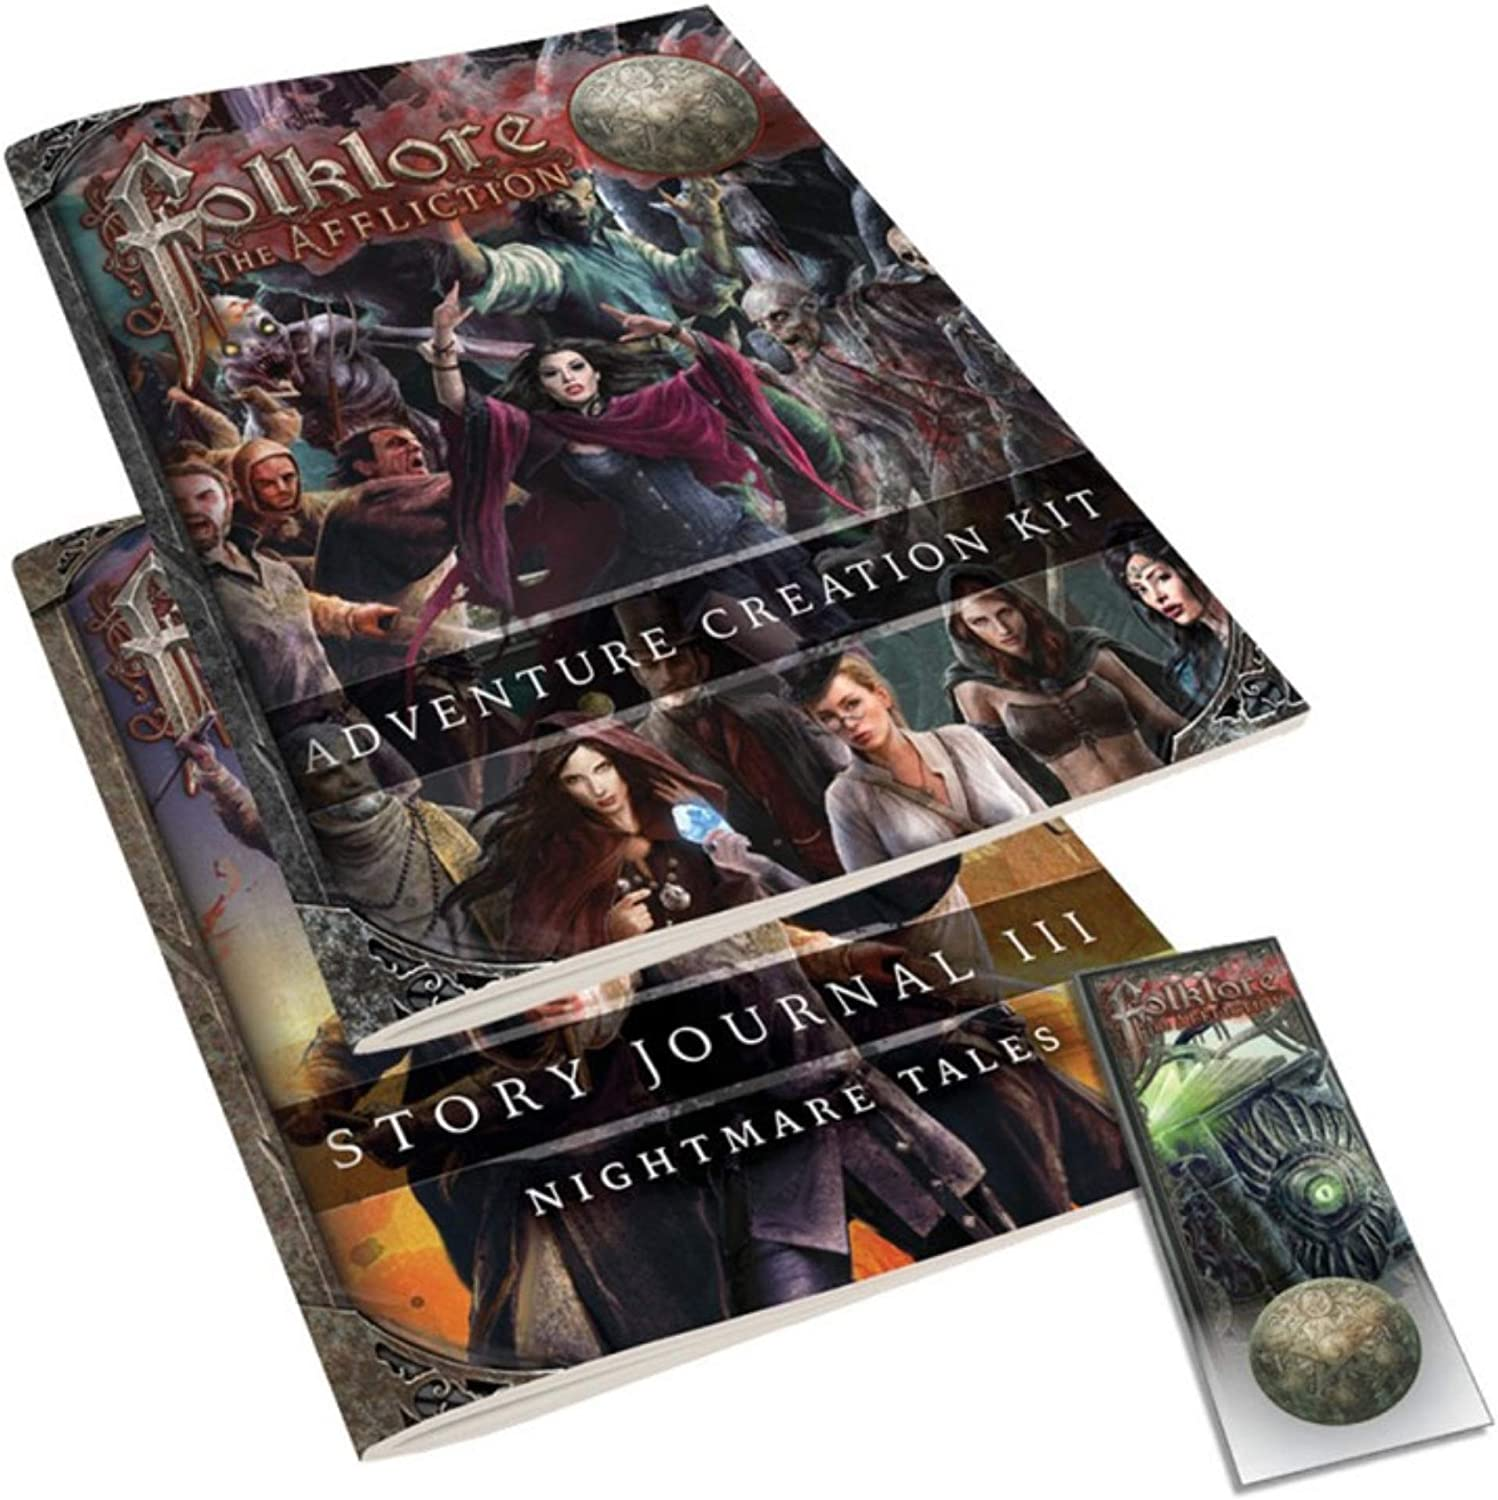 GreenBrier Games FL31GNE Greenbrier Games Folklore Multi-Colored The Affliction Core Game 2E Games